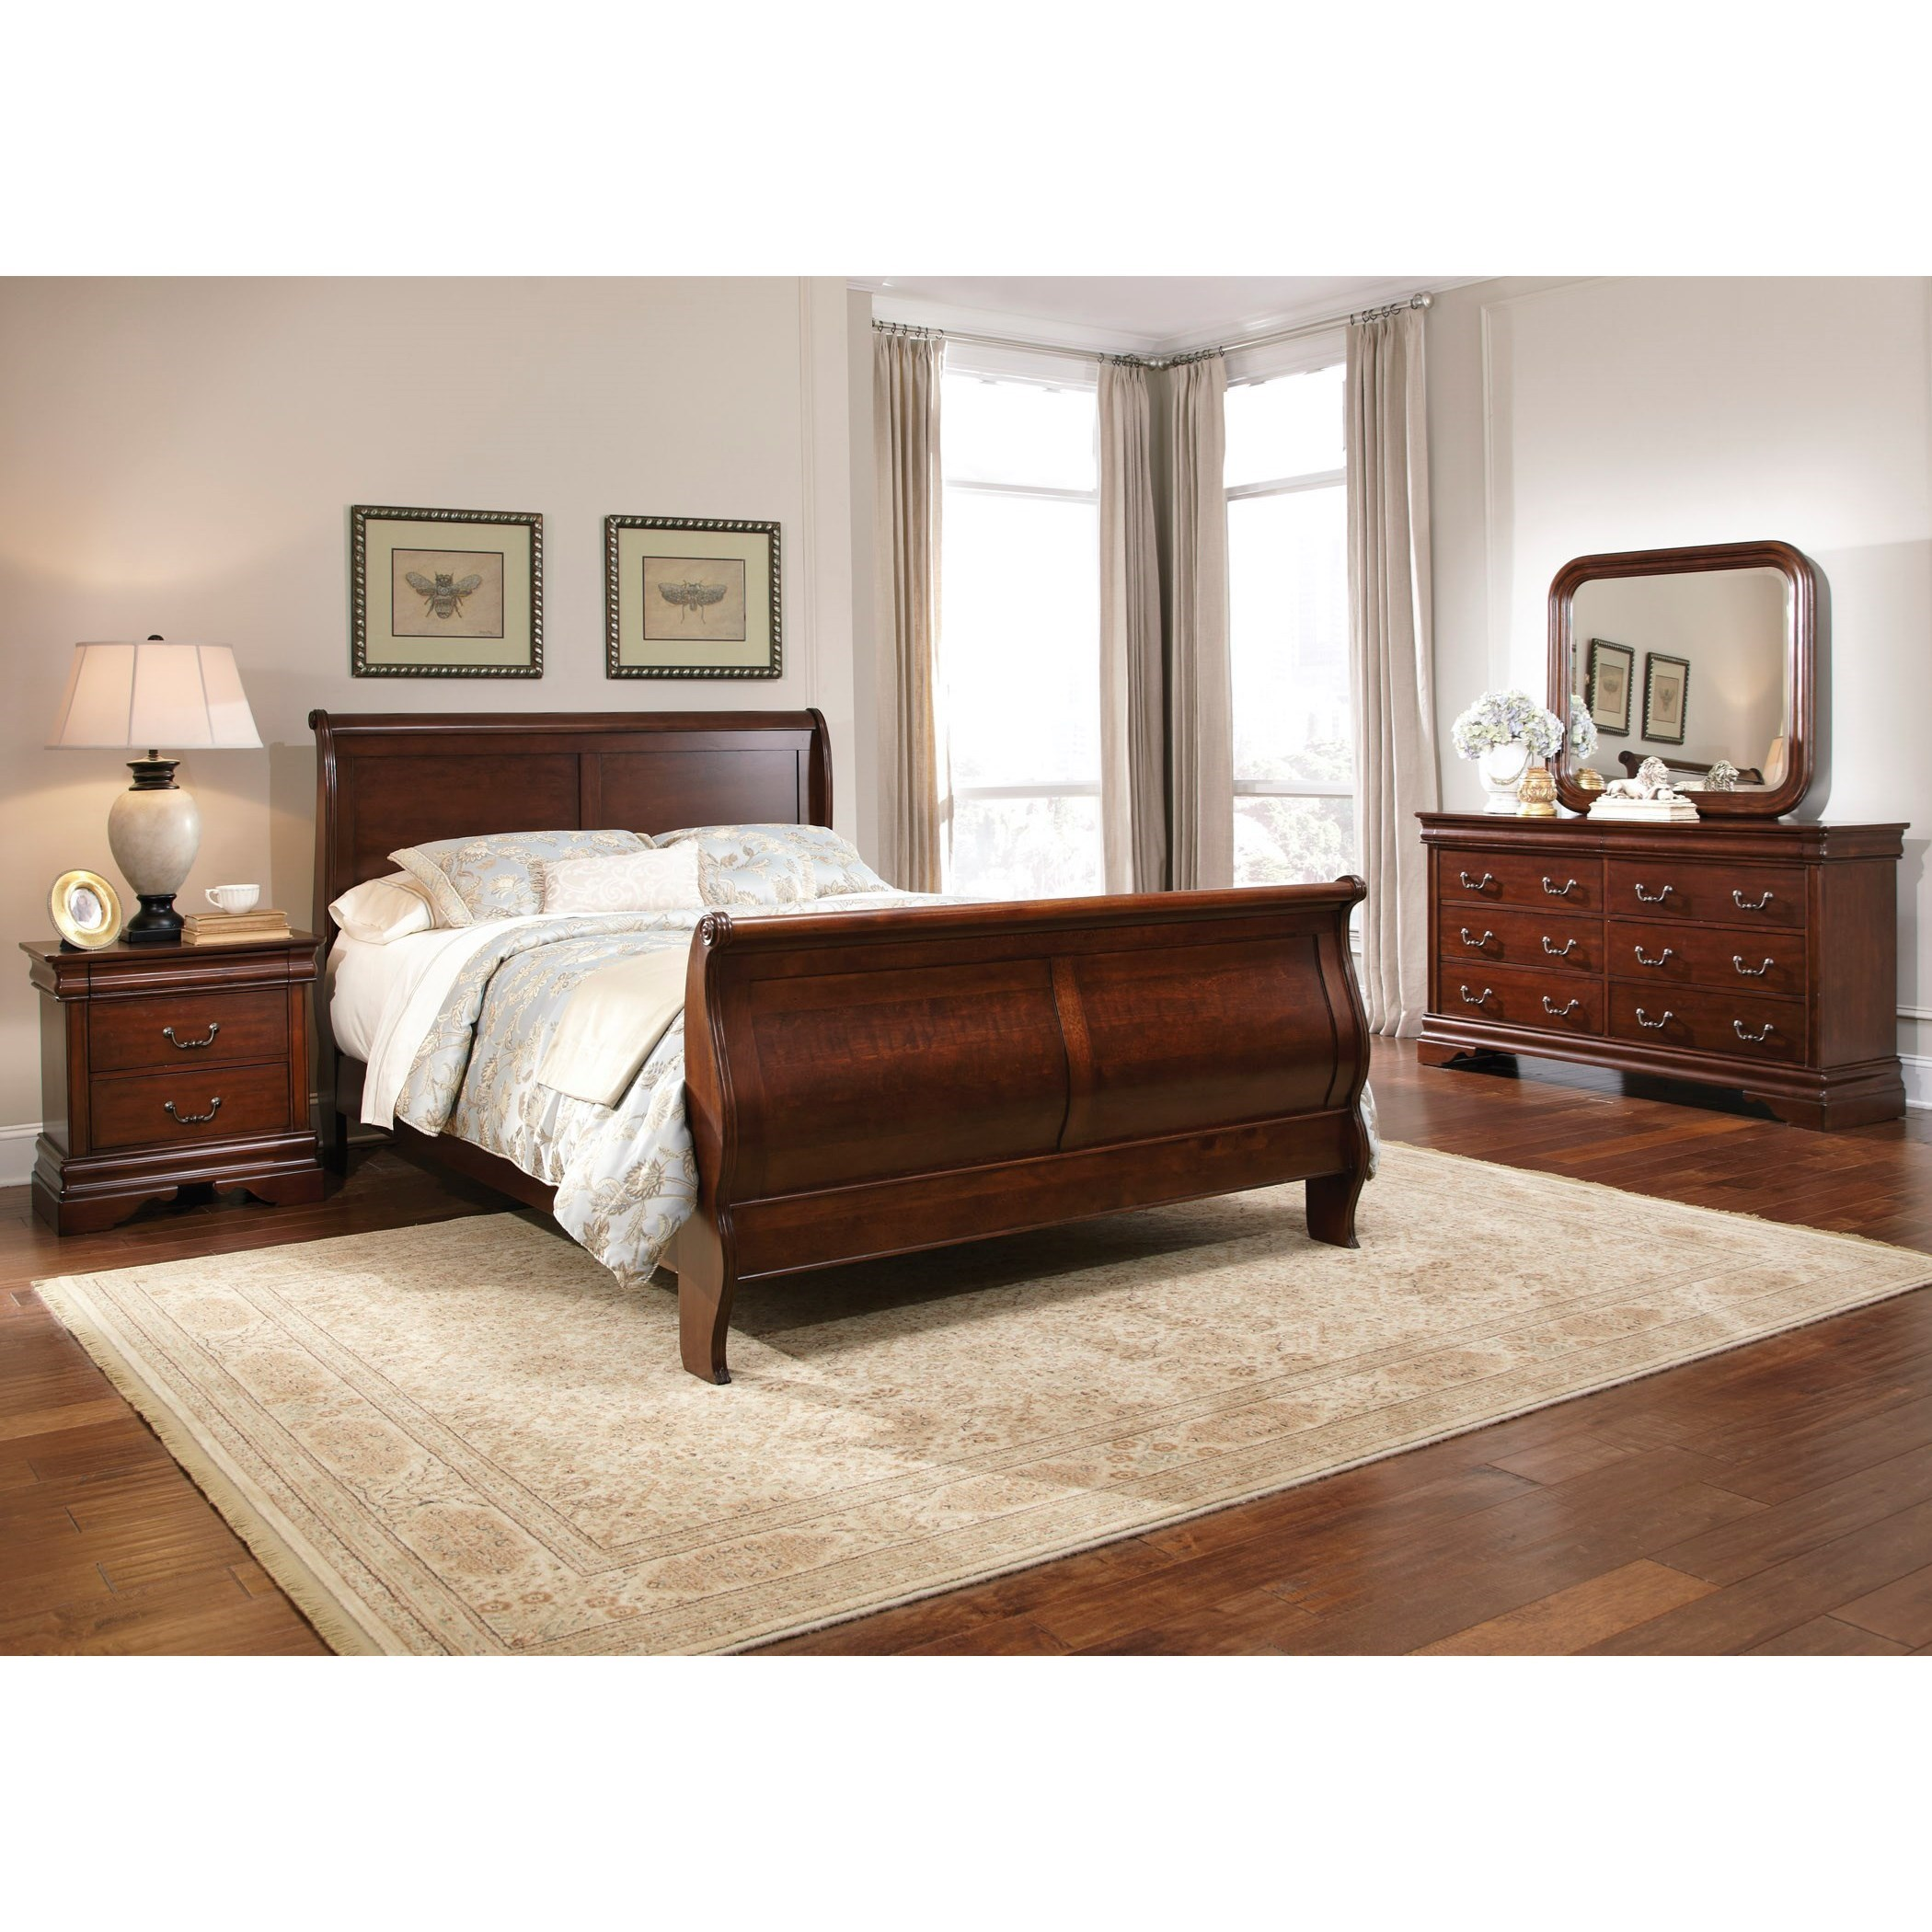 Carriage Court King Sleigh Bedroom Group by Libby at Walker's Furniture